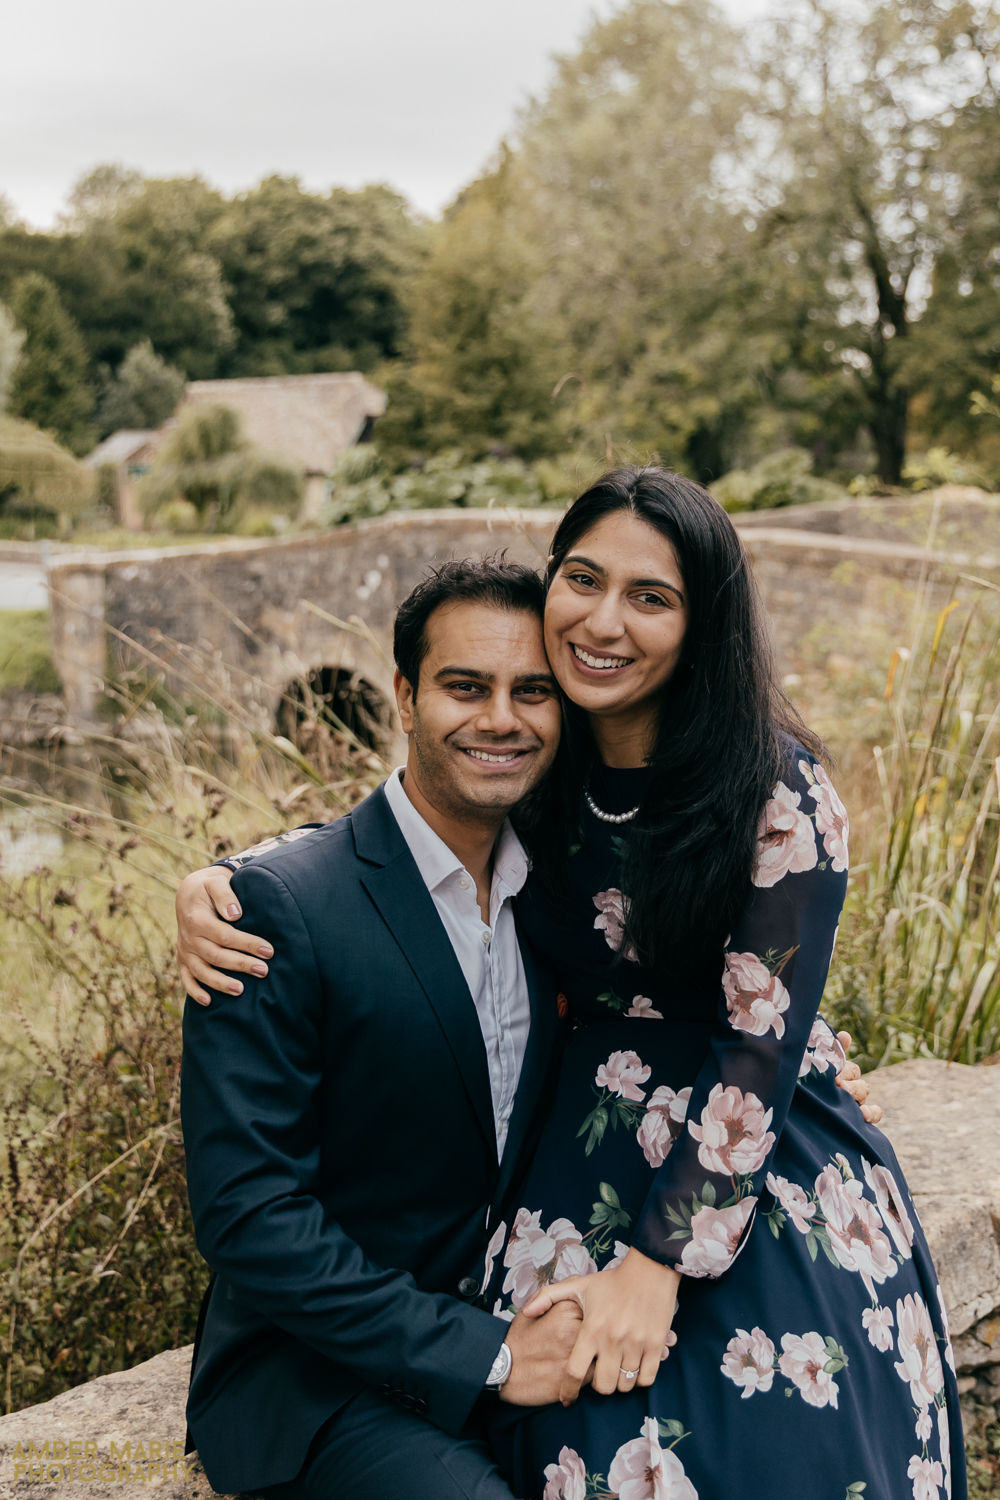 Black bride and groom sat on a wall, in front of a river in a cotswold village. Embracing and smiling.